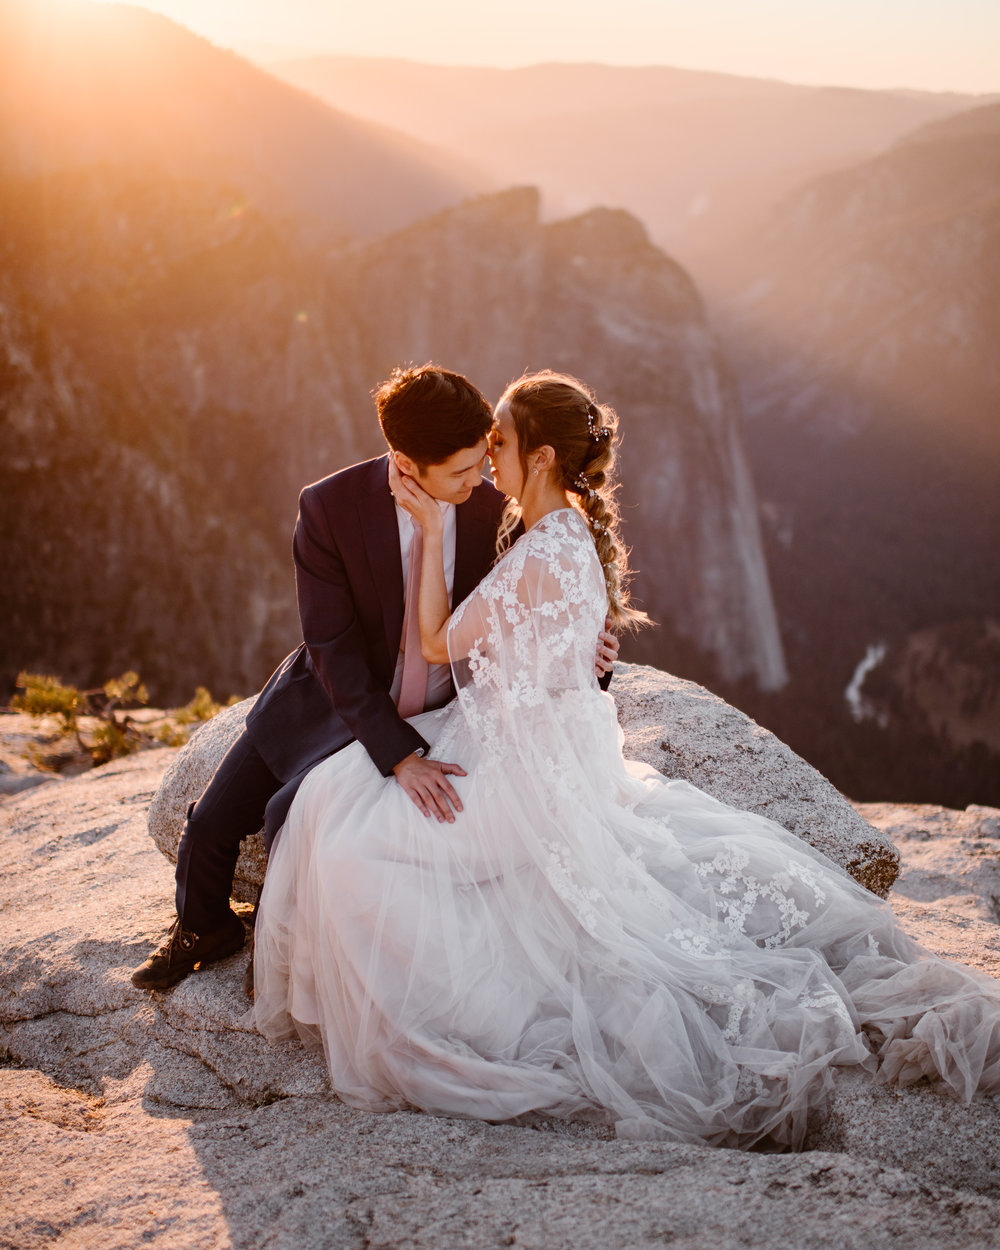 Local Elopements (Colorado) - We define an elopement as an intimate wedding day experience that's focused on YOU two and can include up to 25 of your closest family or friends (if you'd like)—or just have a incredible day just by yourselves.